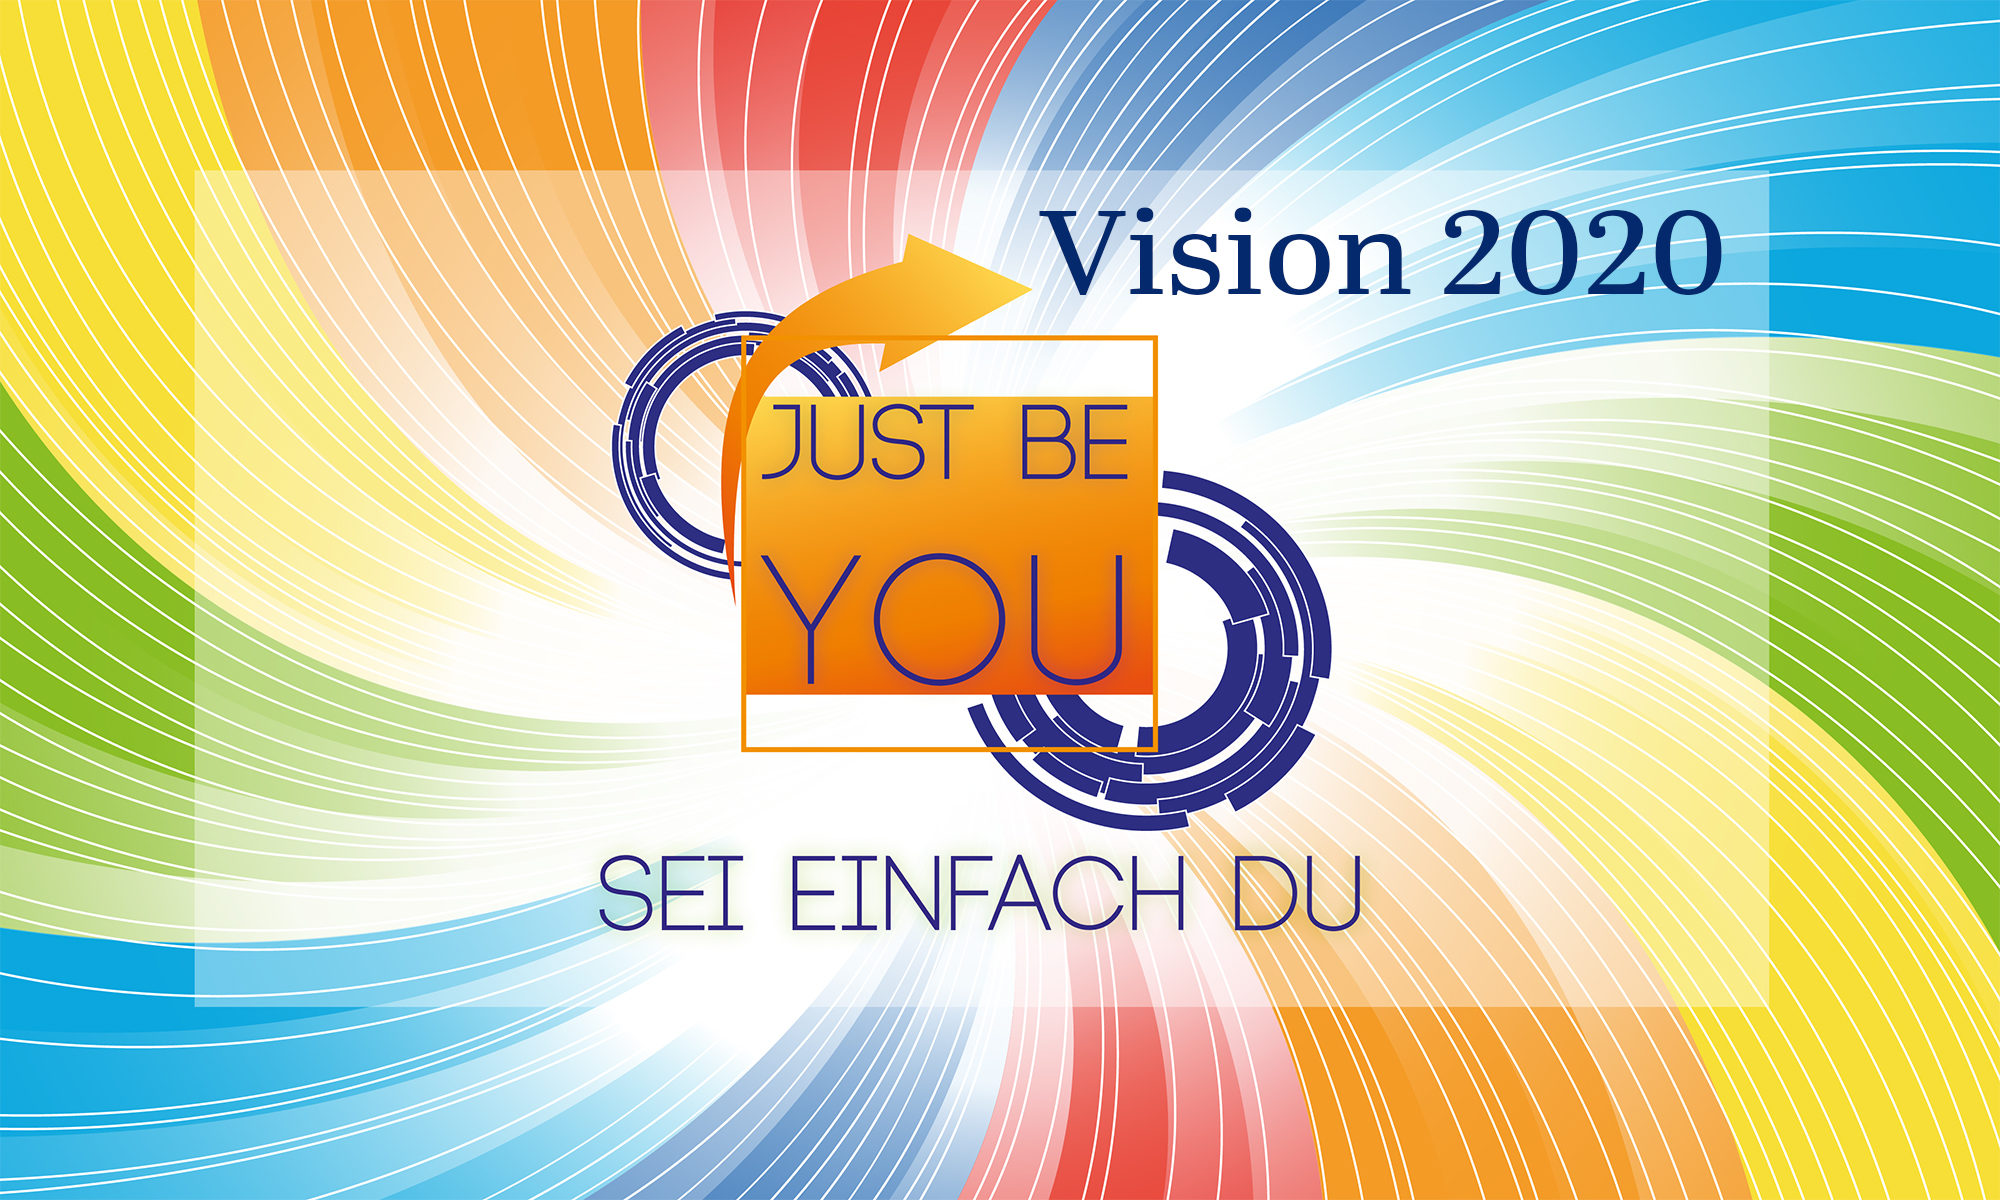 Vision 2020 - Just be You